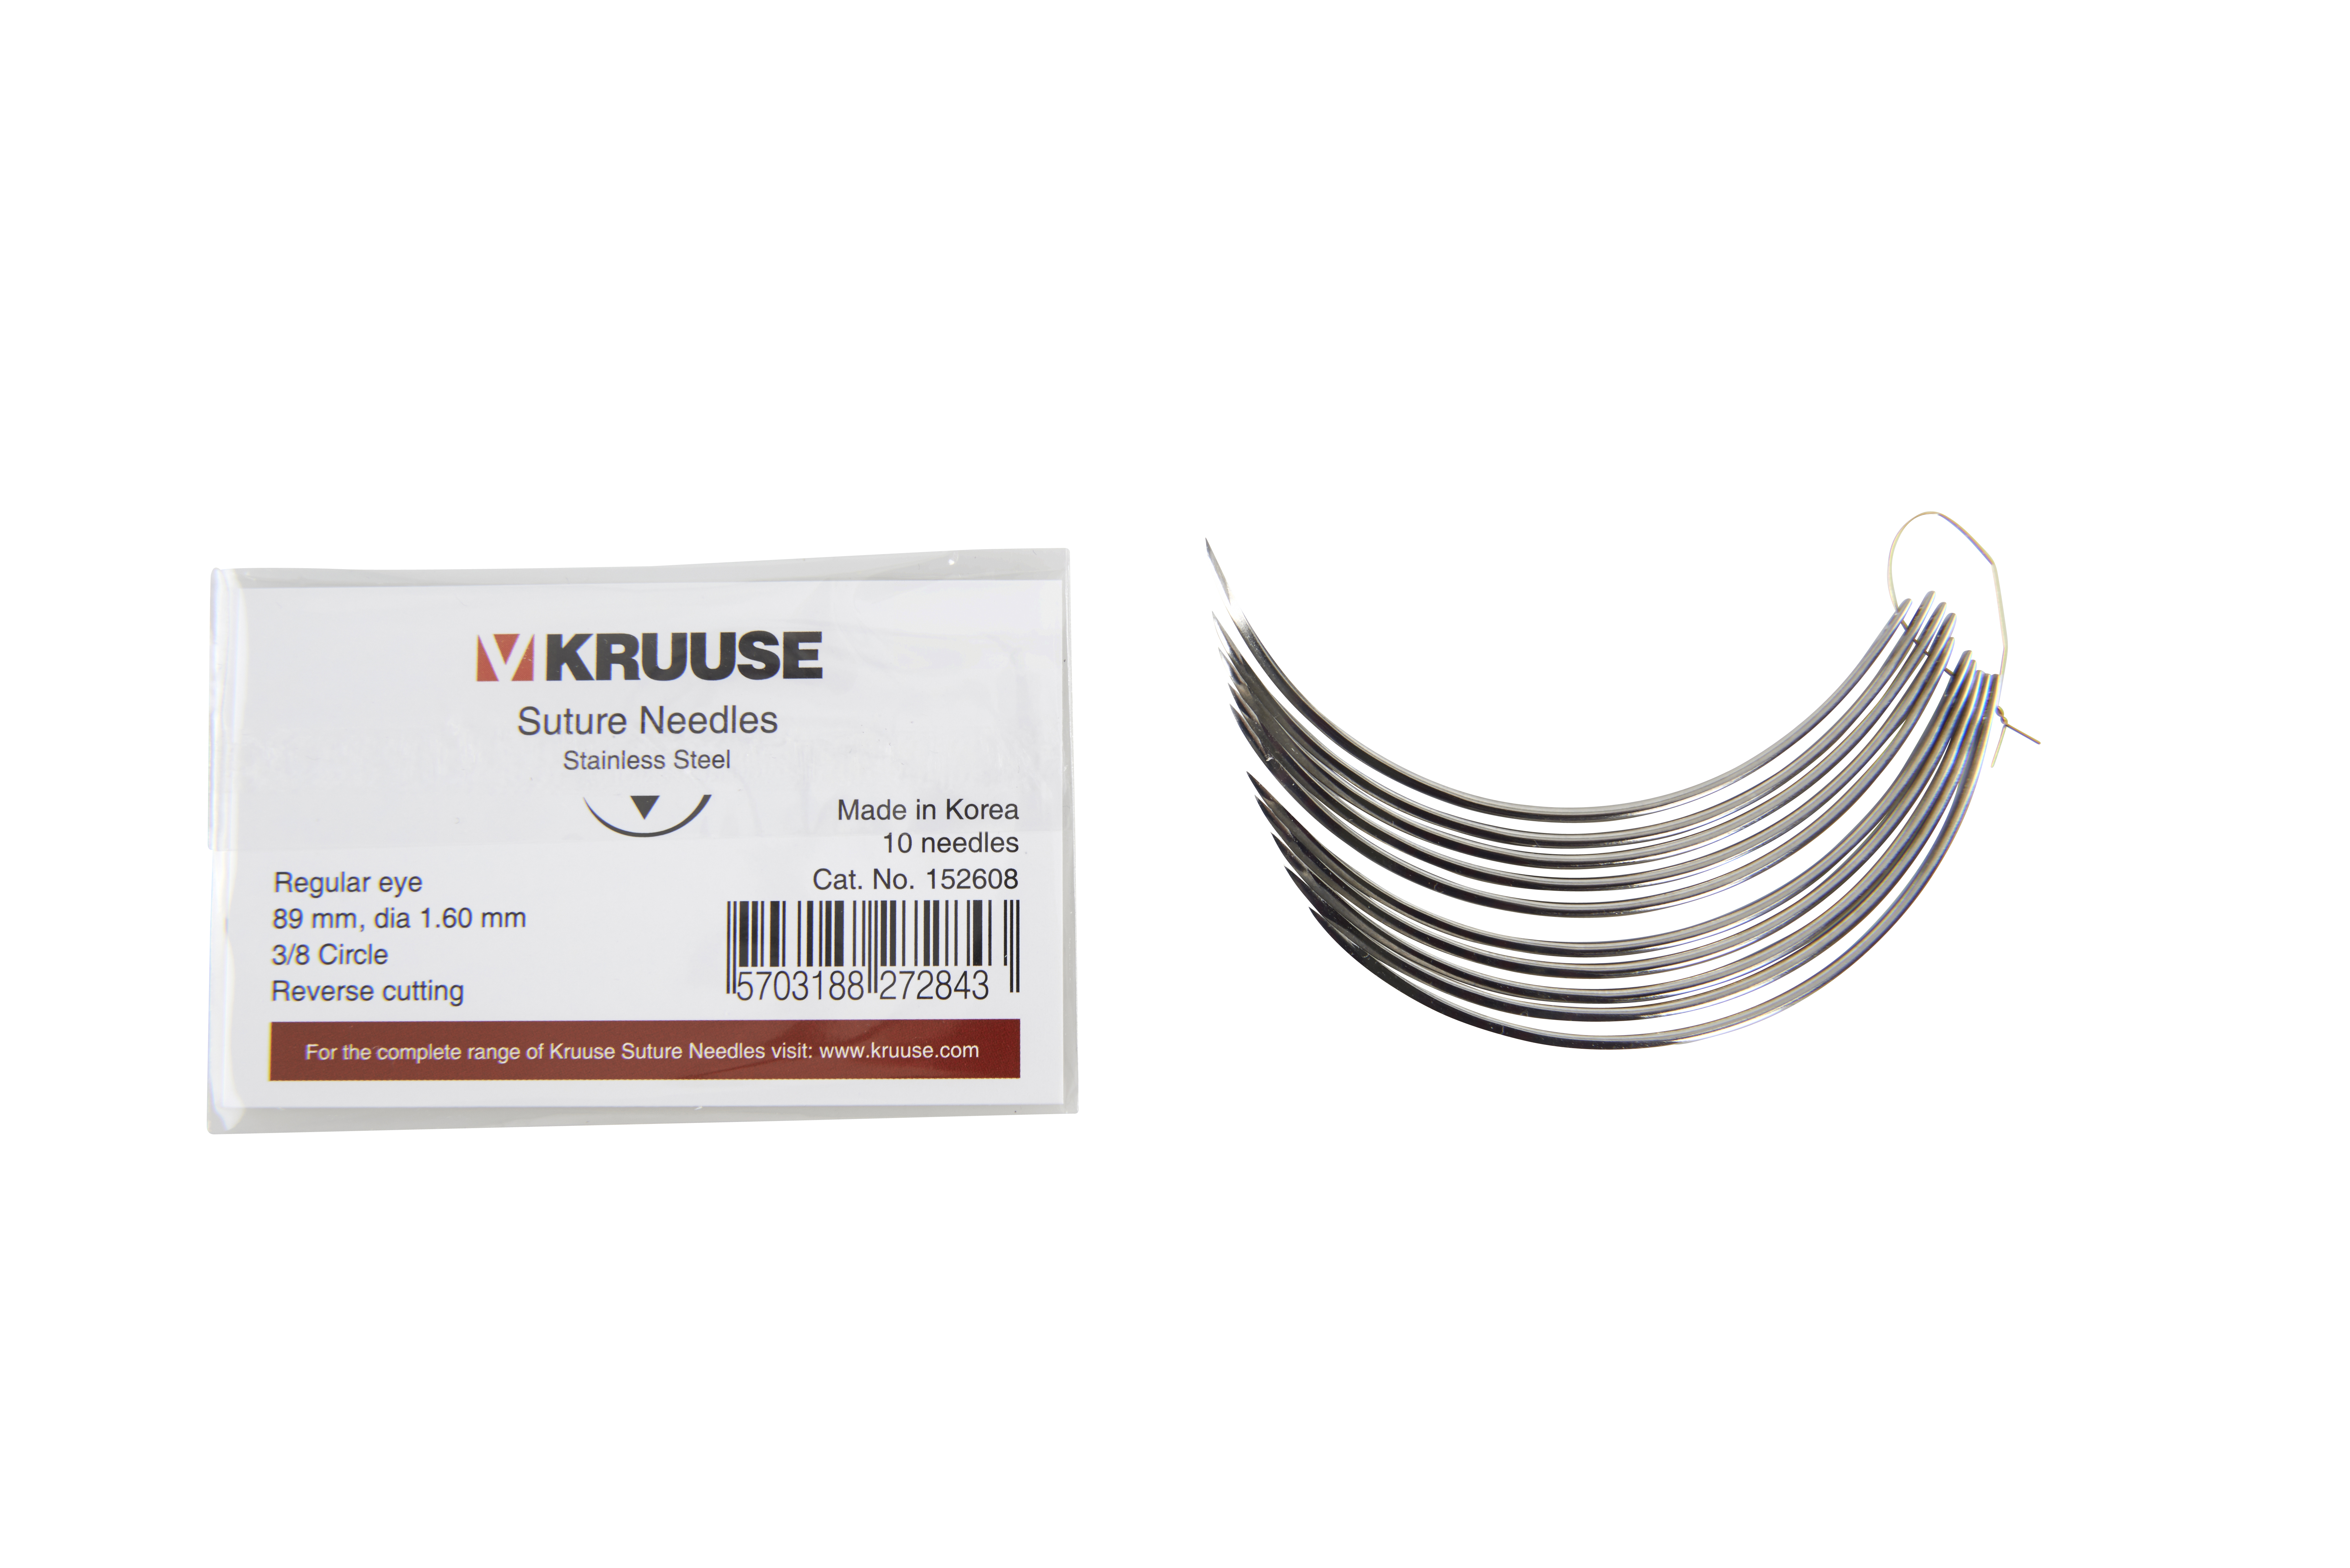 KRUUSE suture needle regular eye, 3/8 circle, reverse cutting, 89 mm (diam. 1.6 mm), 10/pk